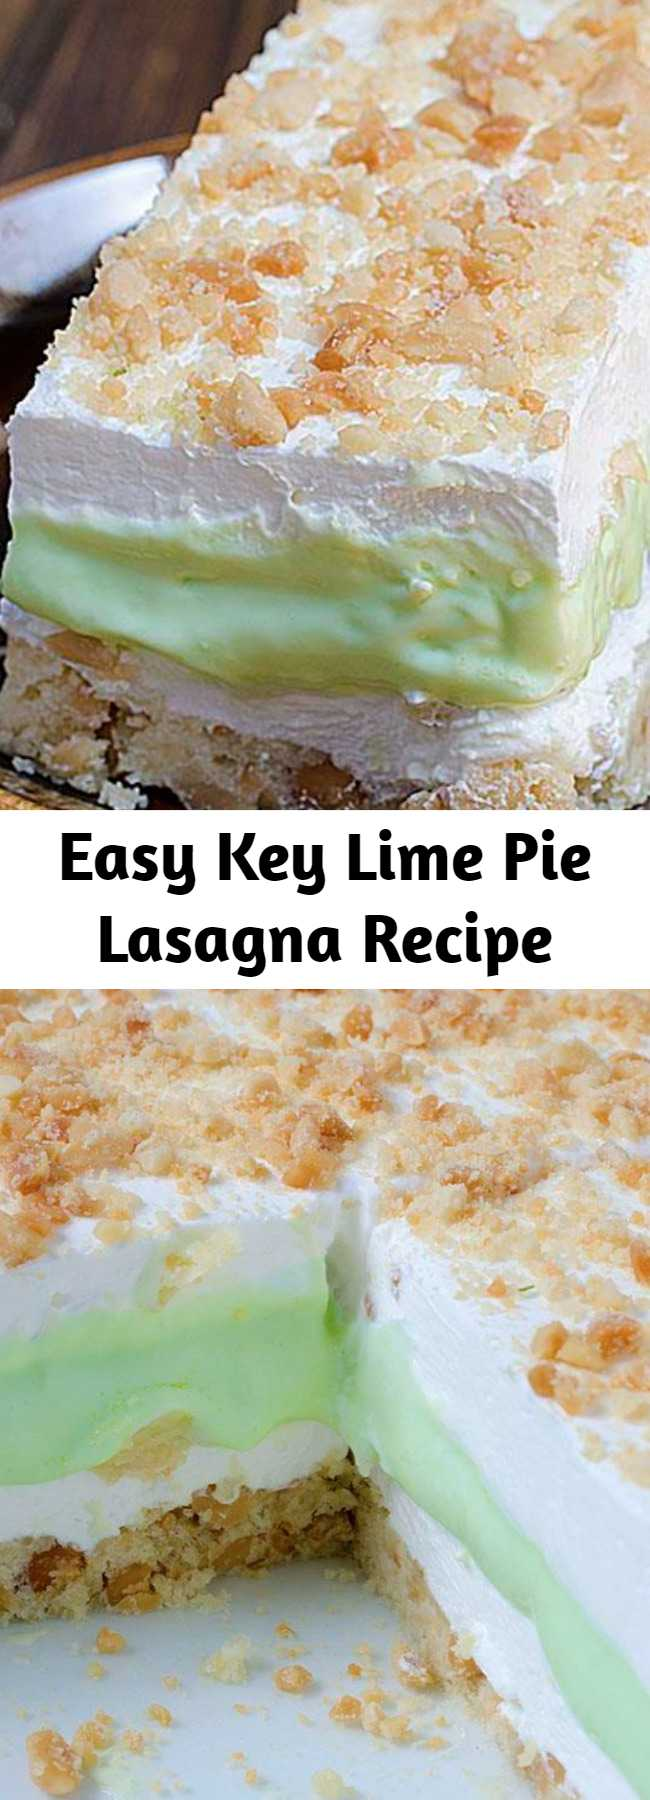 Easy Key Lime Pie Lasagna Recipe - Key Lime Pie Lasagna is cool, light and creamy summer dessert with sweet and tart layers of yumminess.